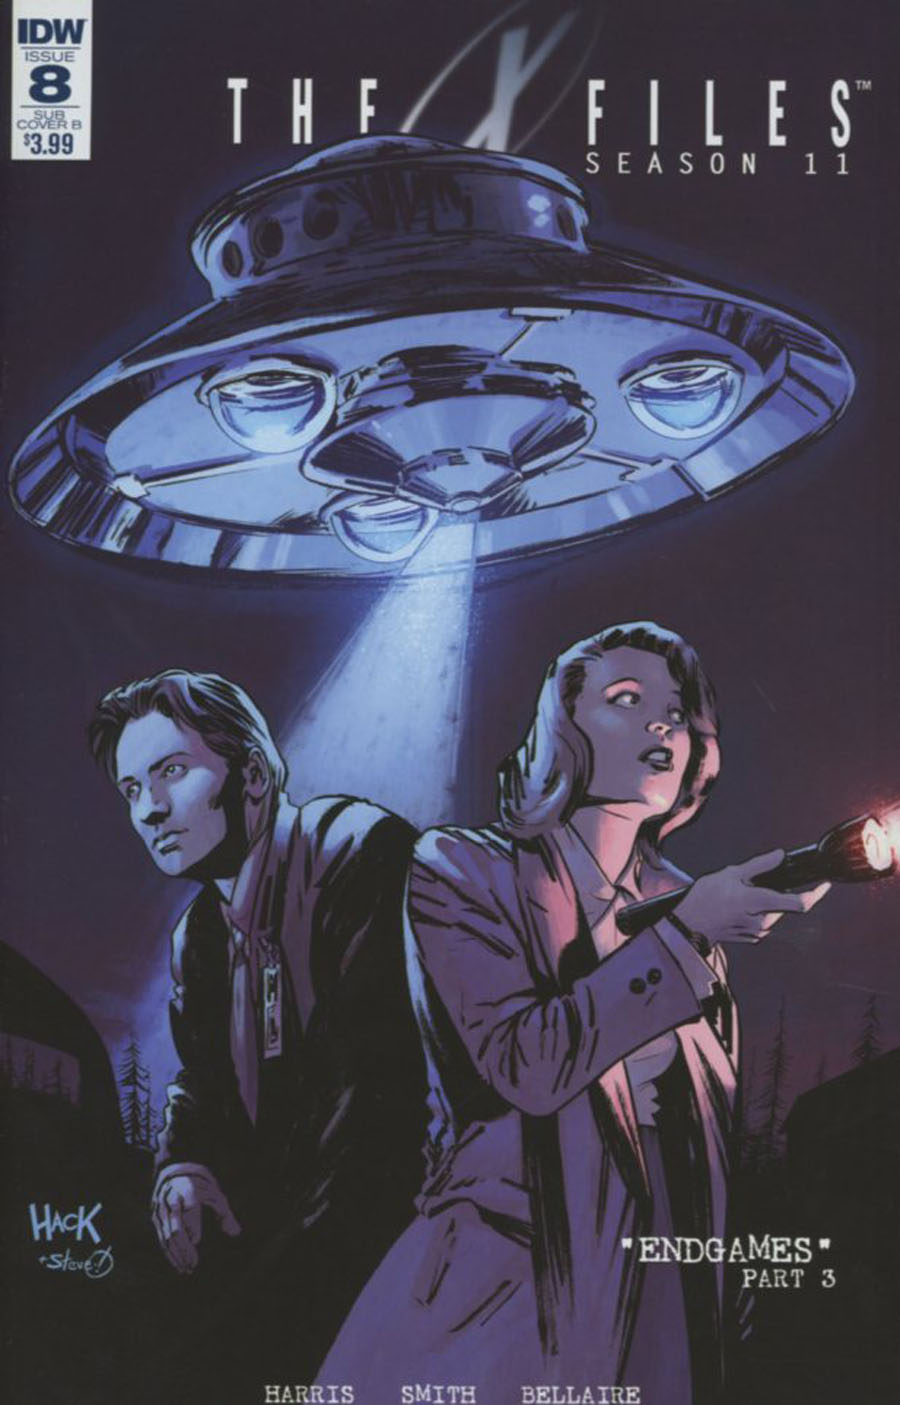 X-Files Season 11 #8 Cover C Variant Robert Hack Subscription Cover